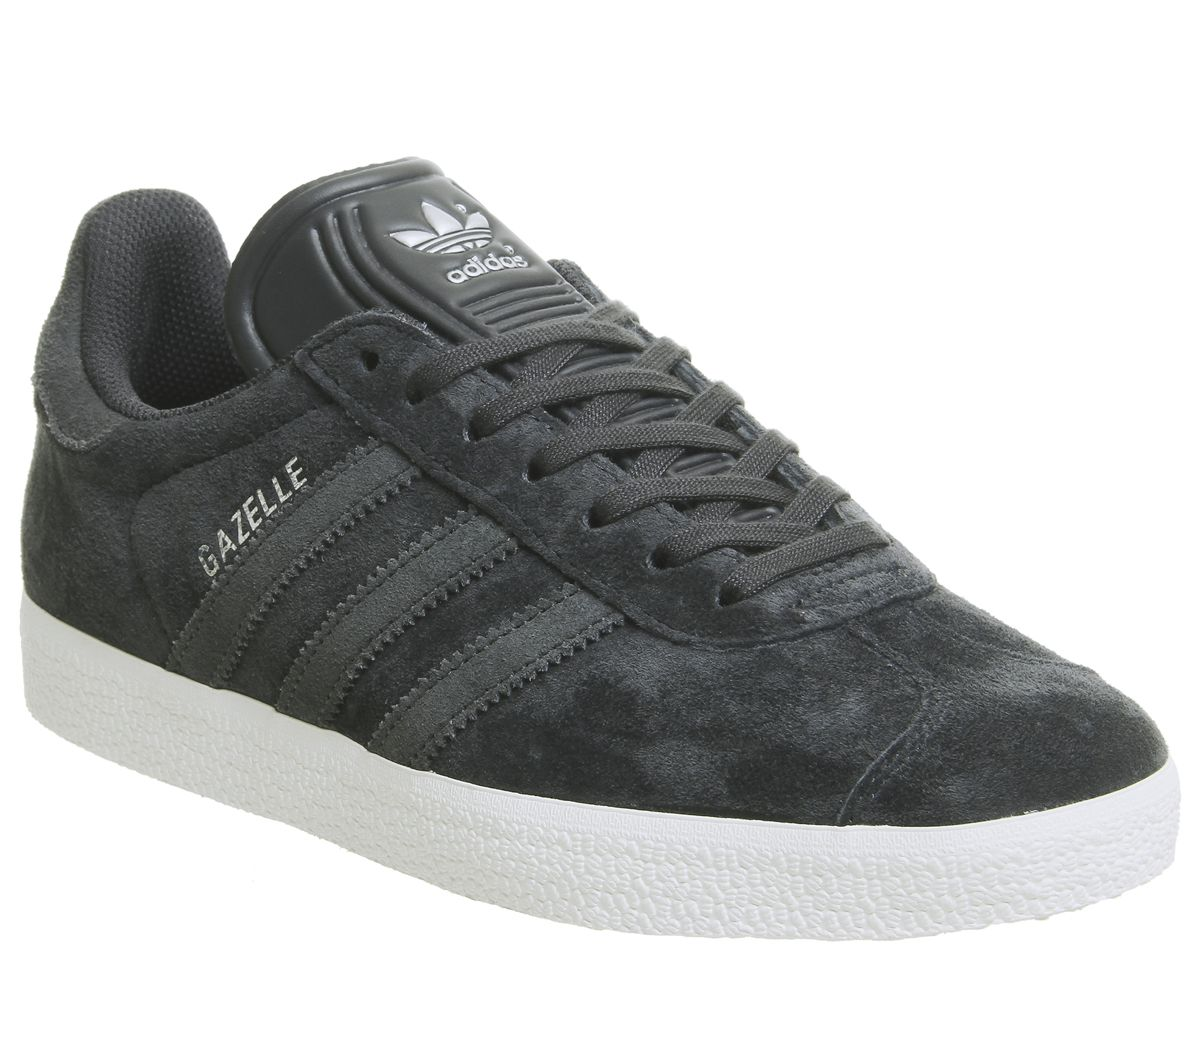 size 40 62357 5a339 adidas Gazelle Trainers Night Grey Carbon Silver Exclusive - Unisex ...